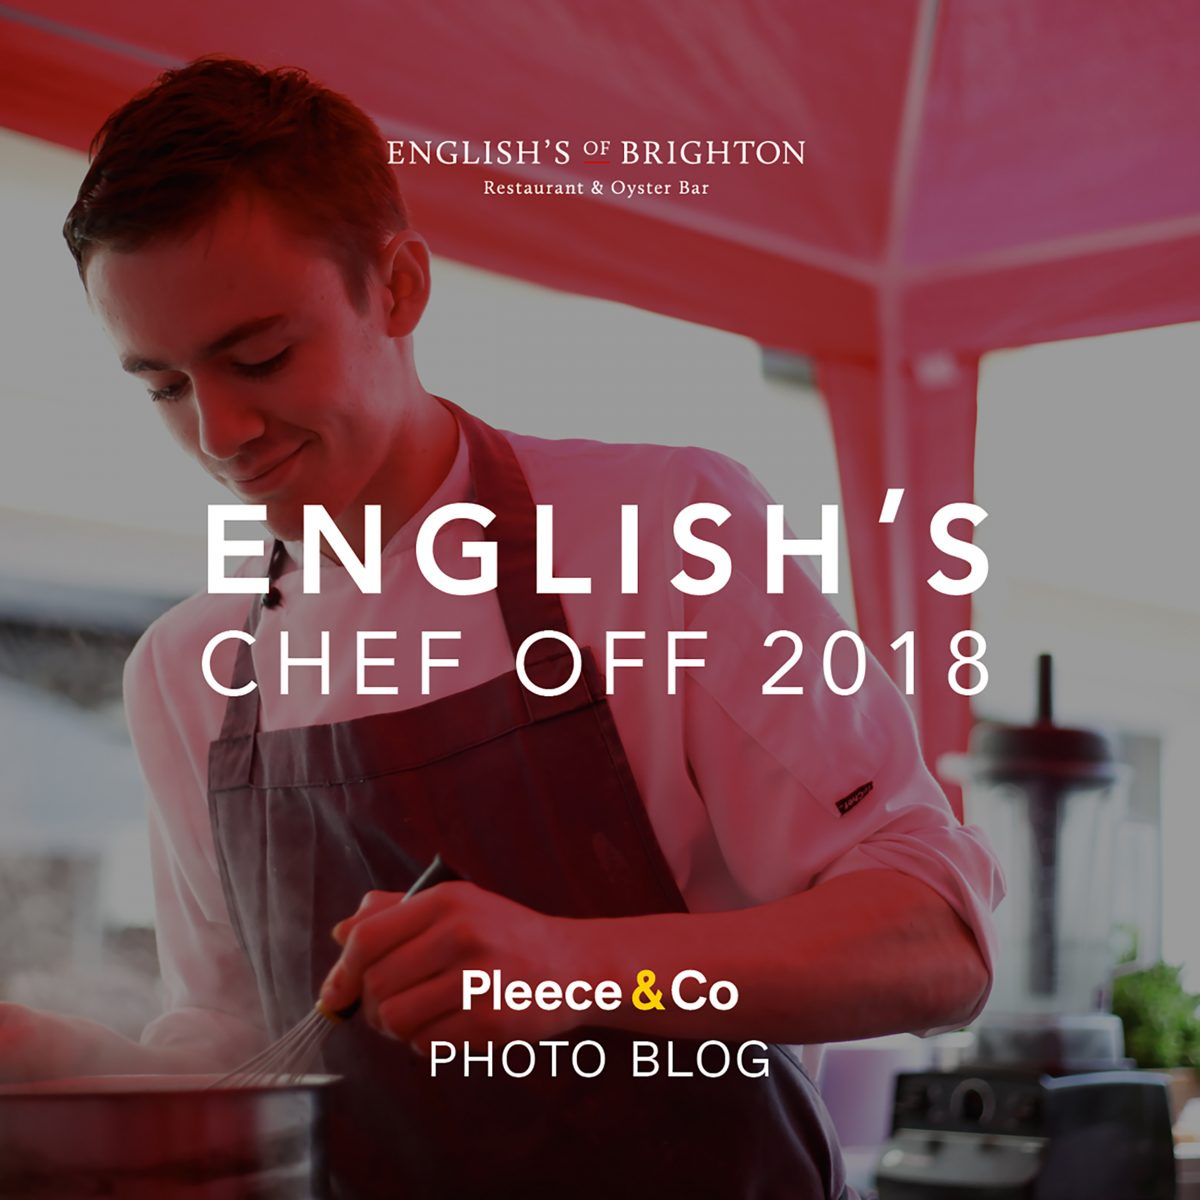 English's Chef Off 2018  Pleece & Co Photo Blog